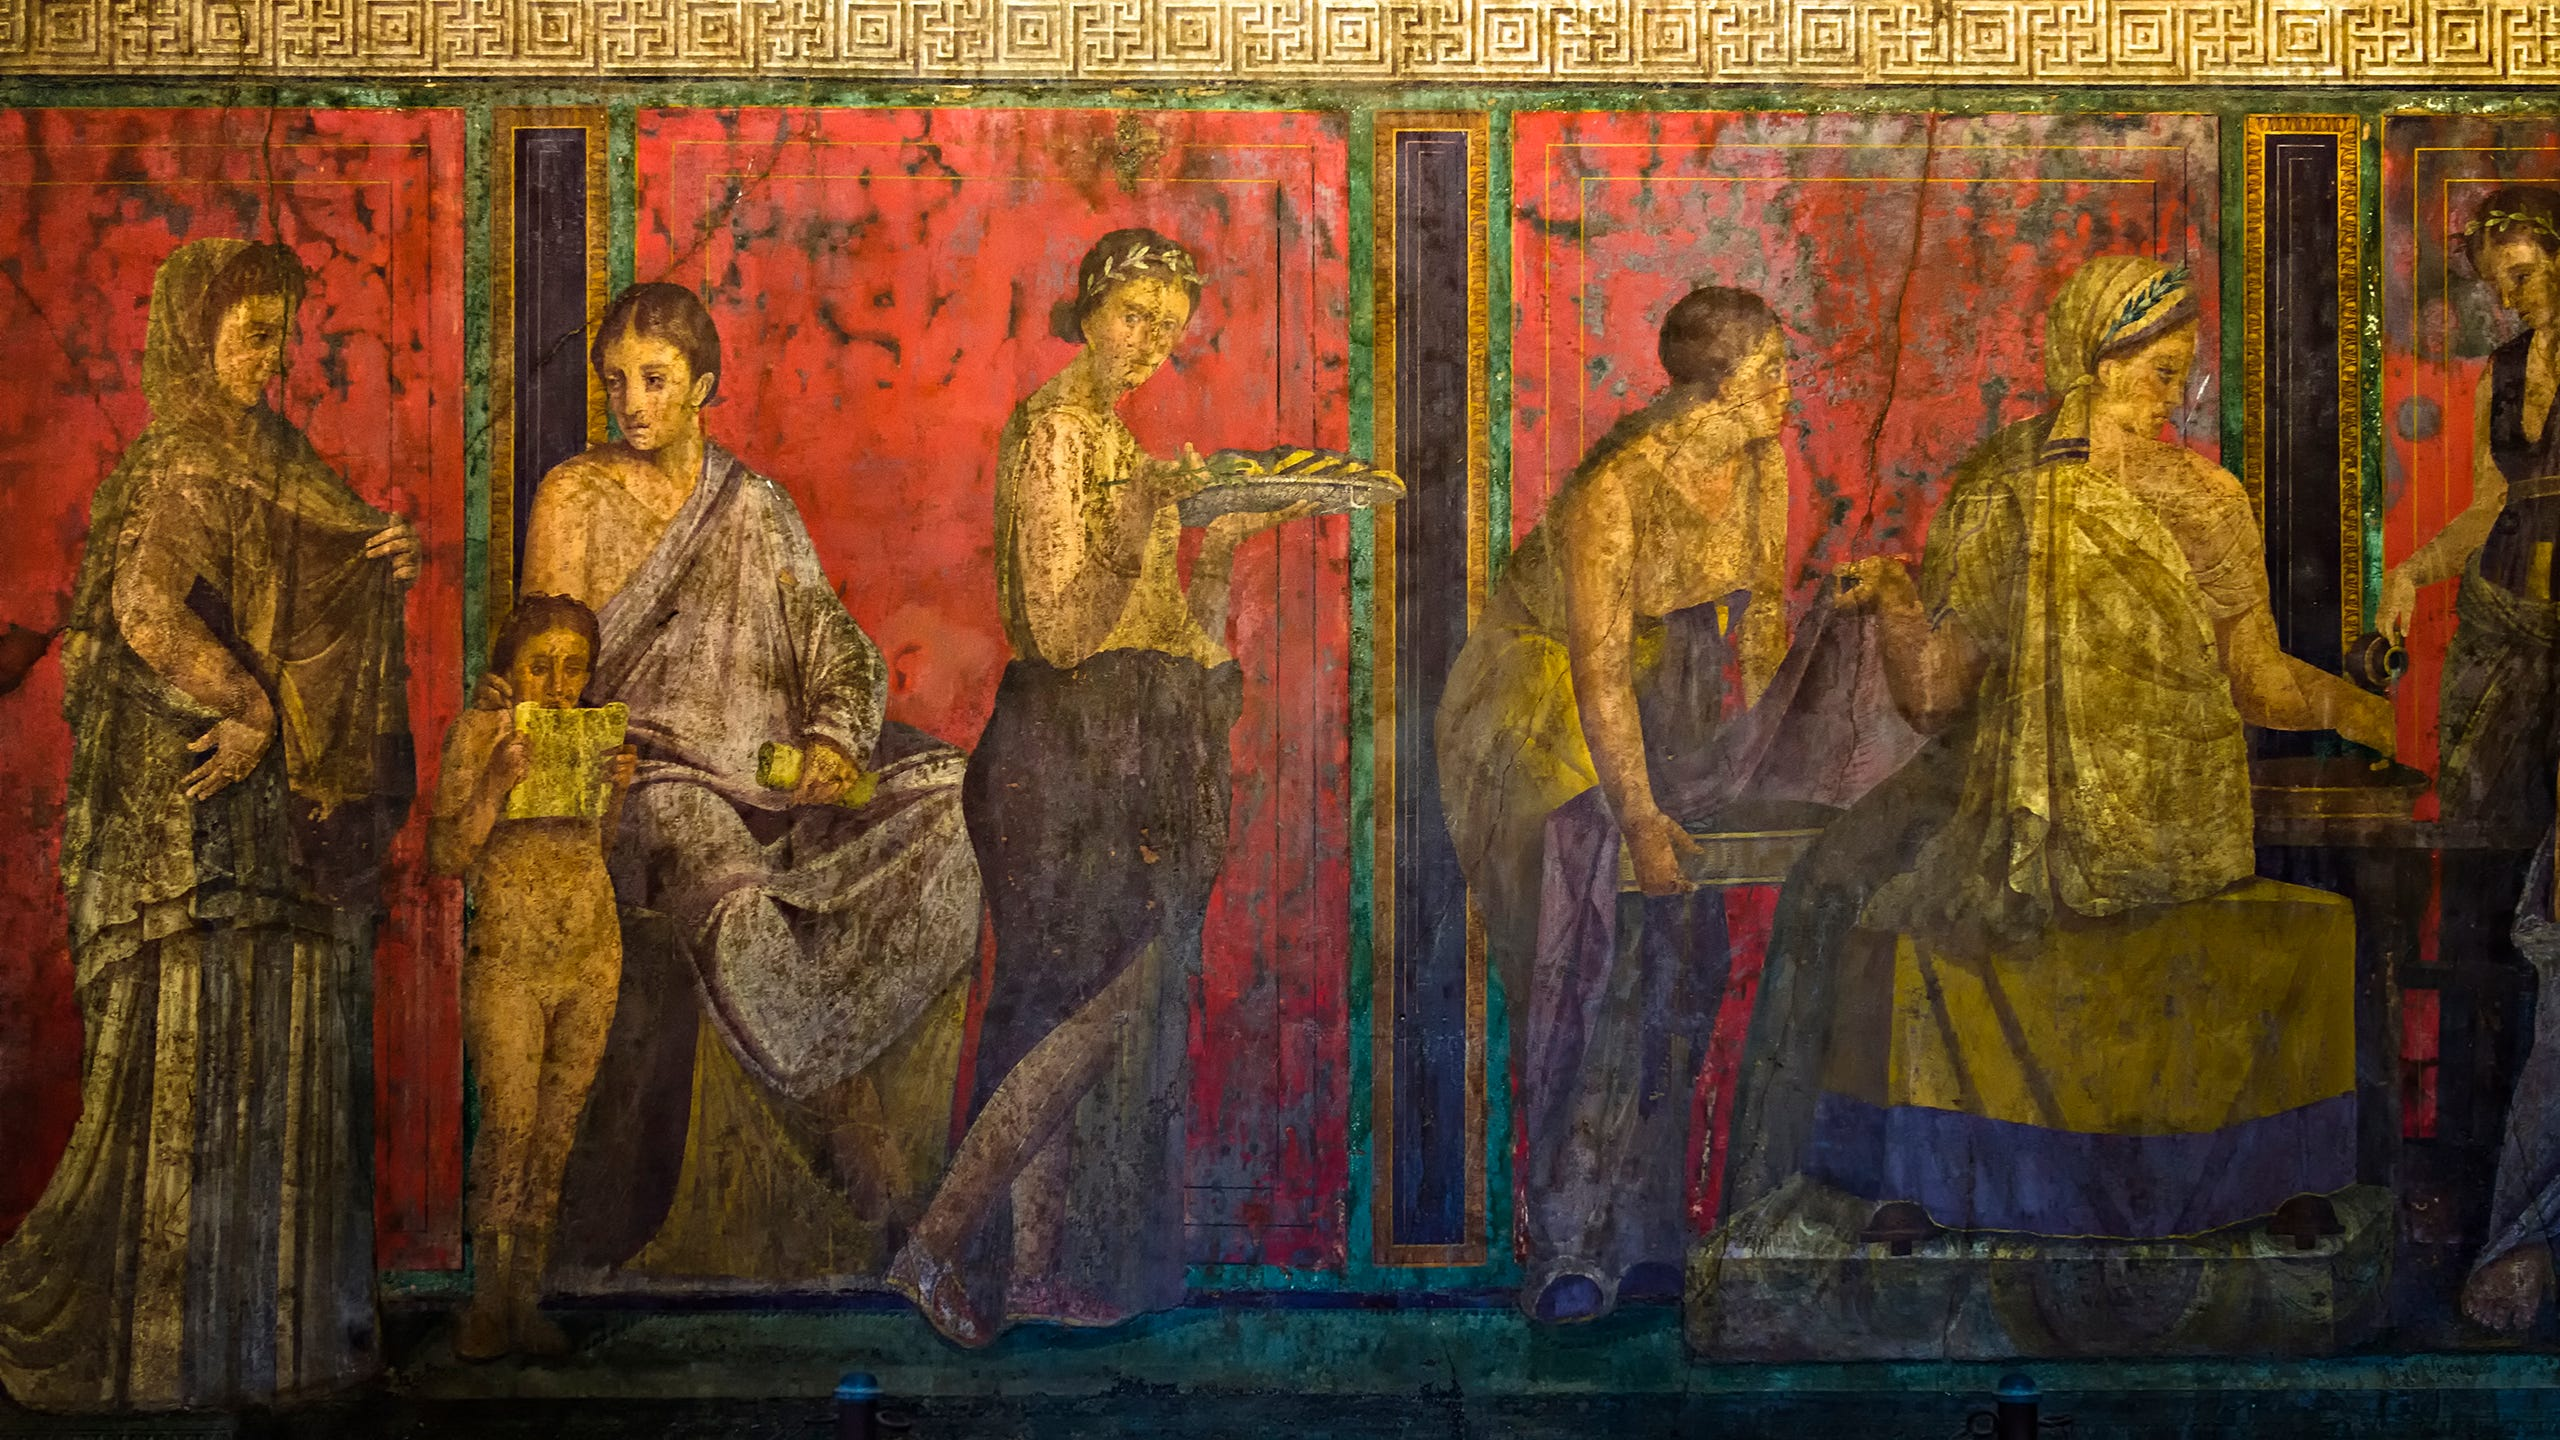 Frozen in time: The ruins of Pompeii